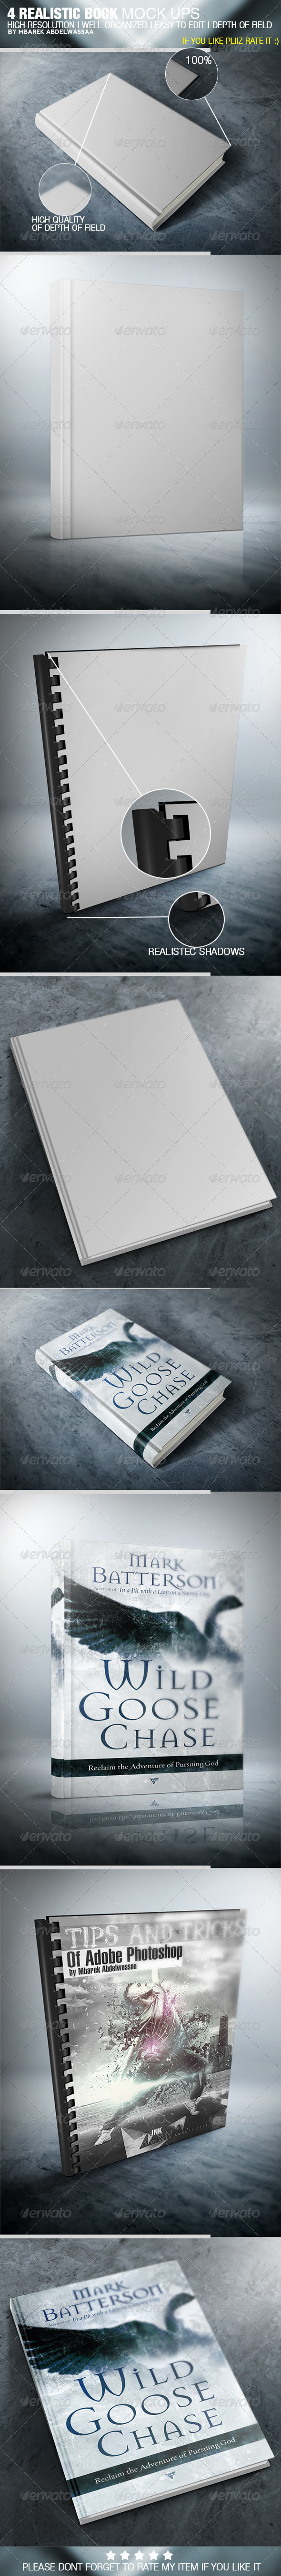 GraphicRiver 4 Realistic Book Cover Mock Ups 5254703